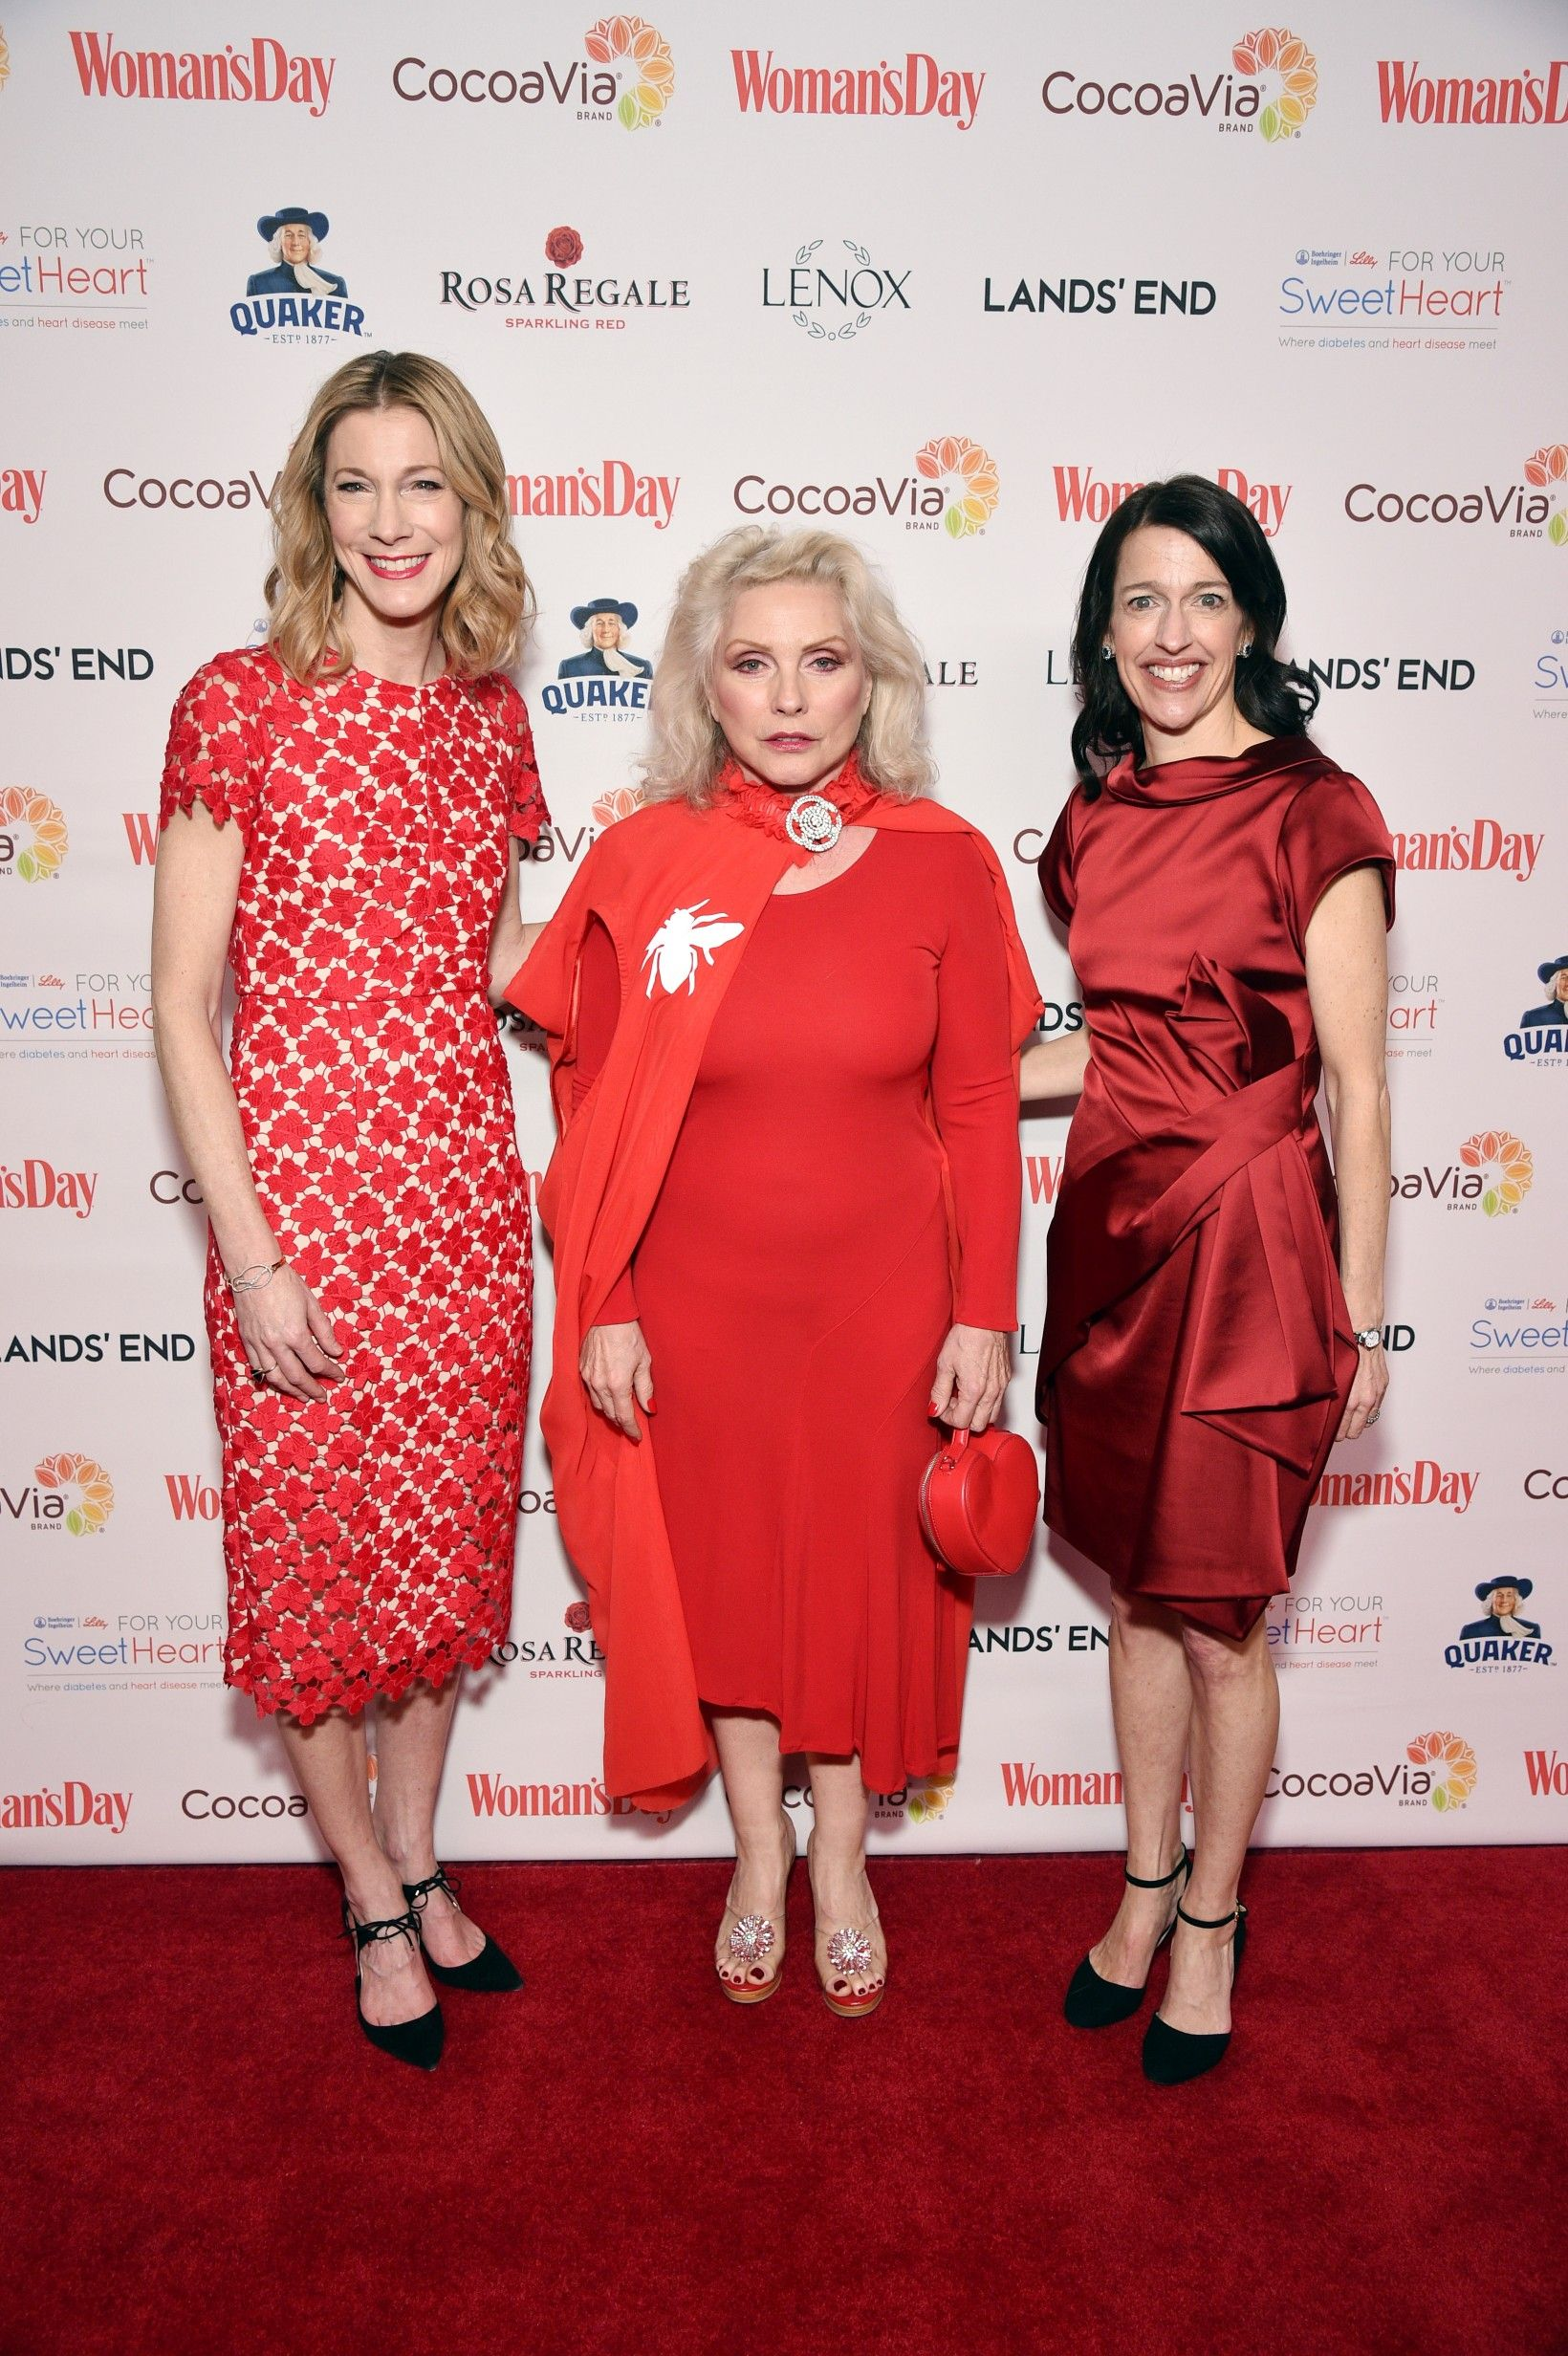 2017 Red Dress Award Honorees